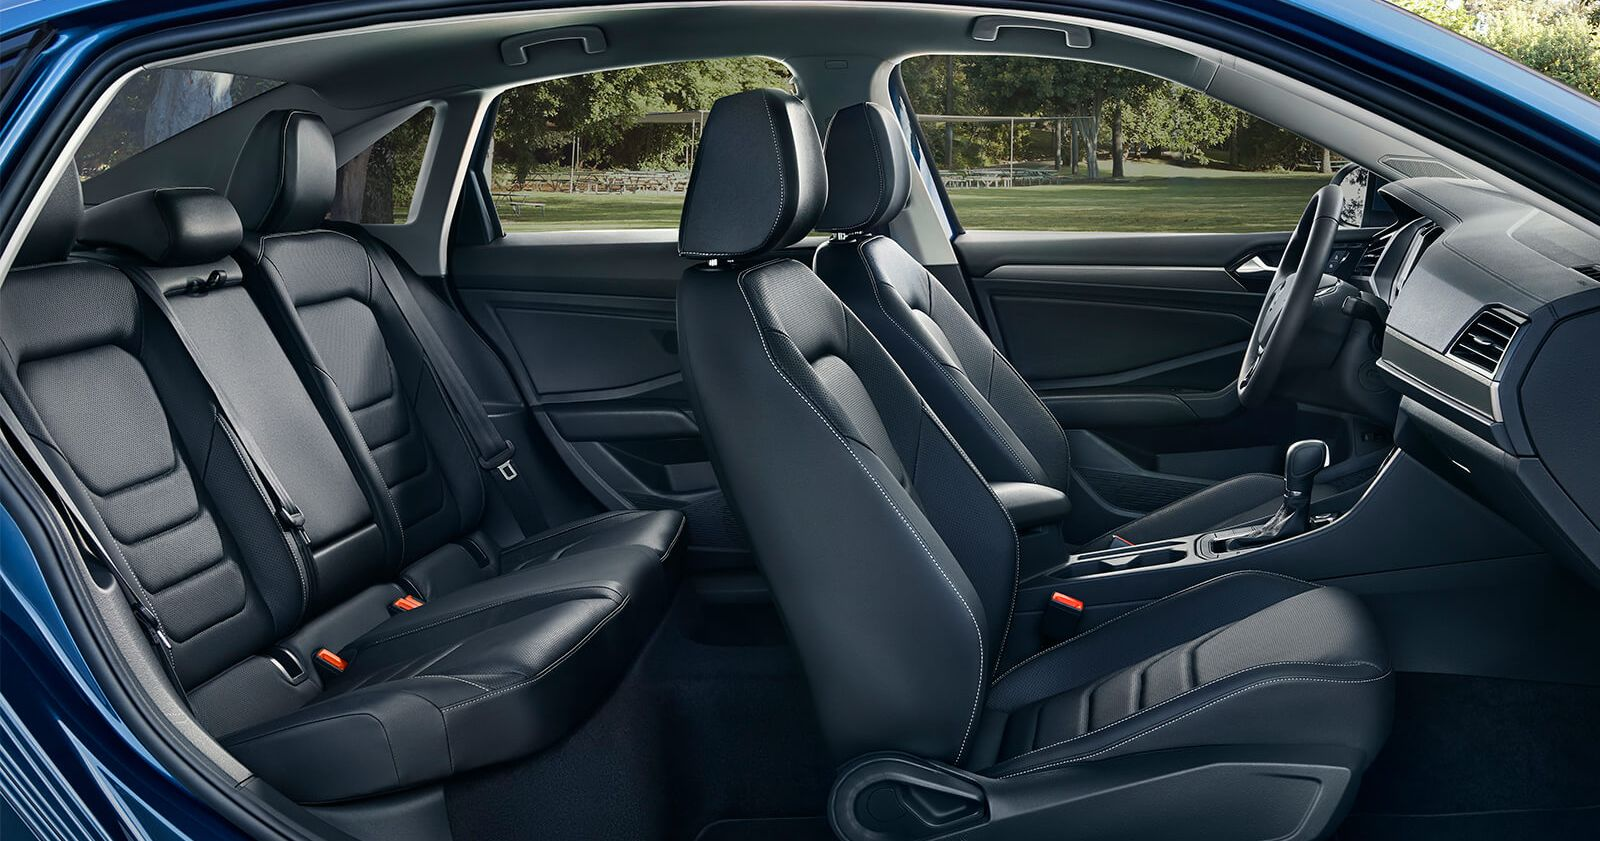 Spacious Jetta Interior